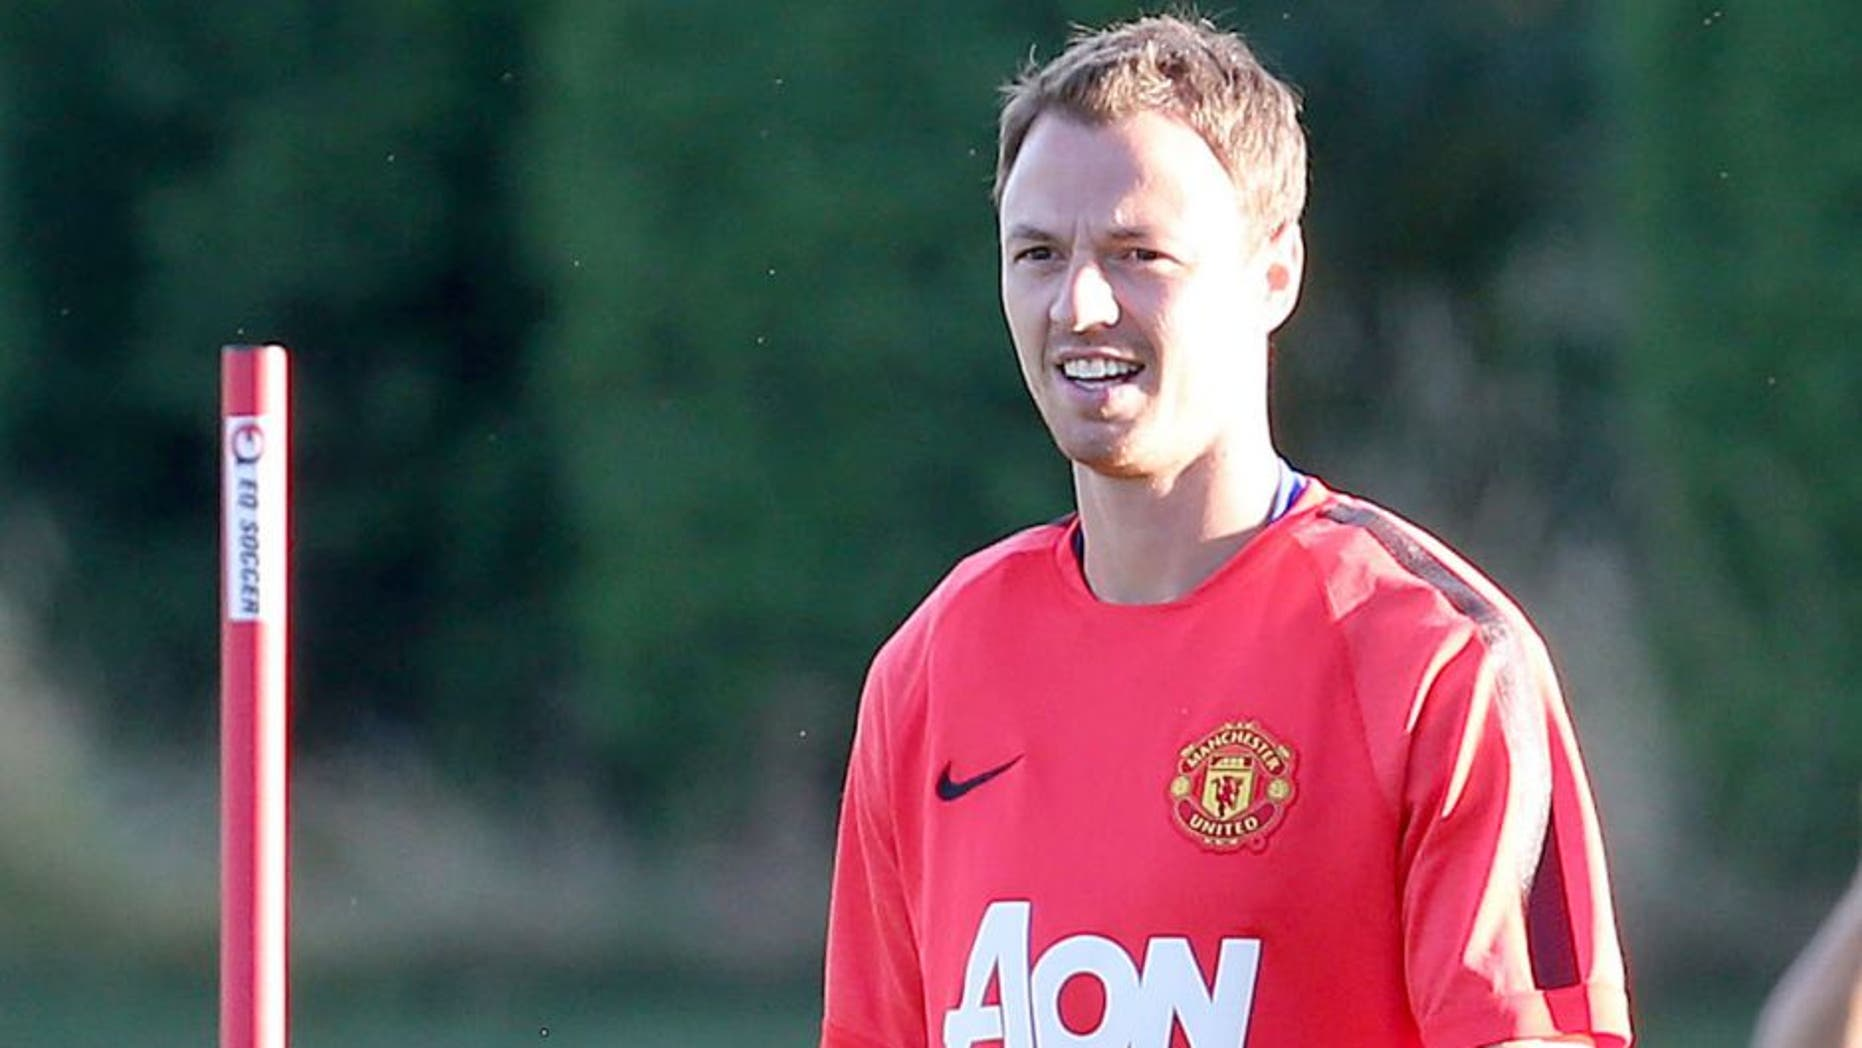 SEATTLE, WA - JULY 16: Jonny Evans of Manchester United in action during a first team training session as part of their pre-season tour of the USA at VMAC on July 16, 2015 in Seattle, Washington. (Photo by Matthew Peters/Man Utd via Getty Images)